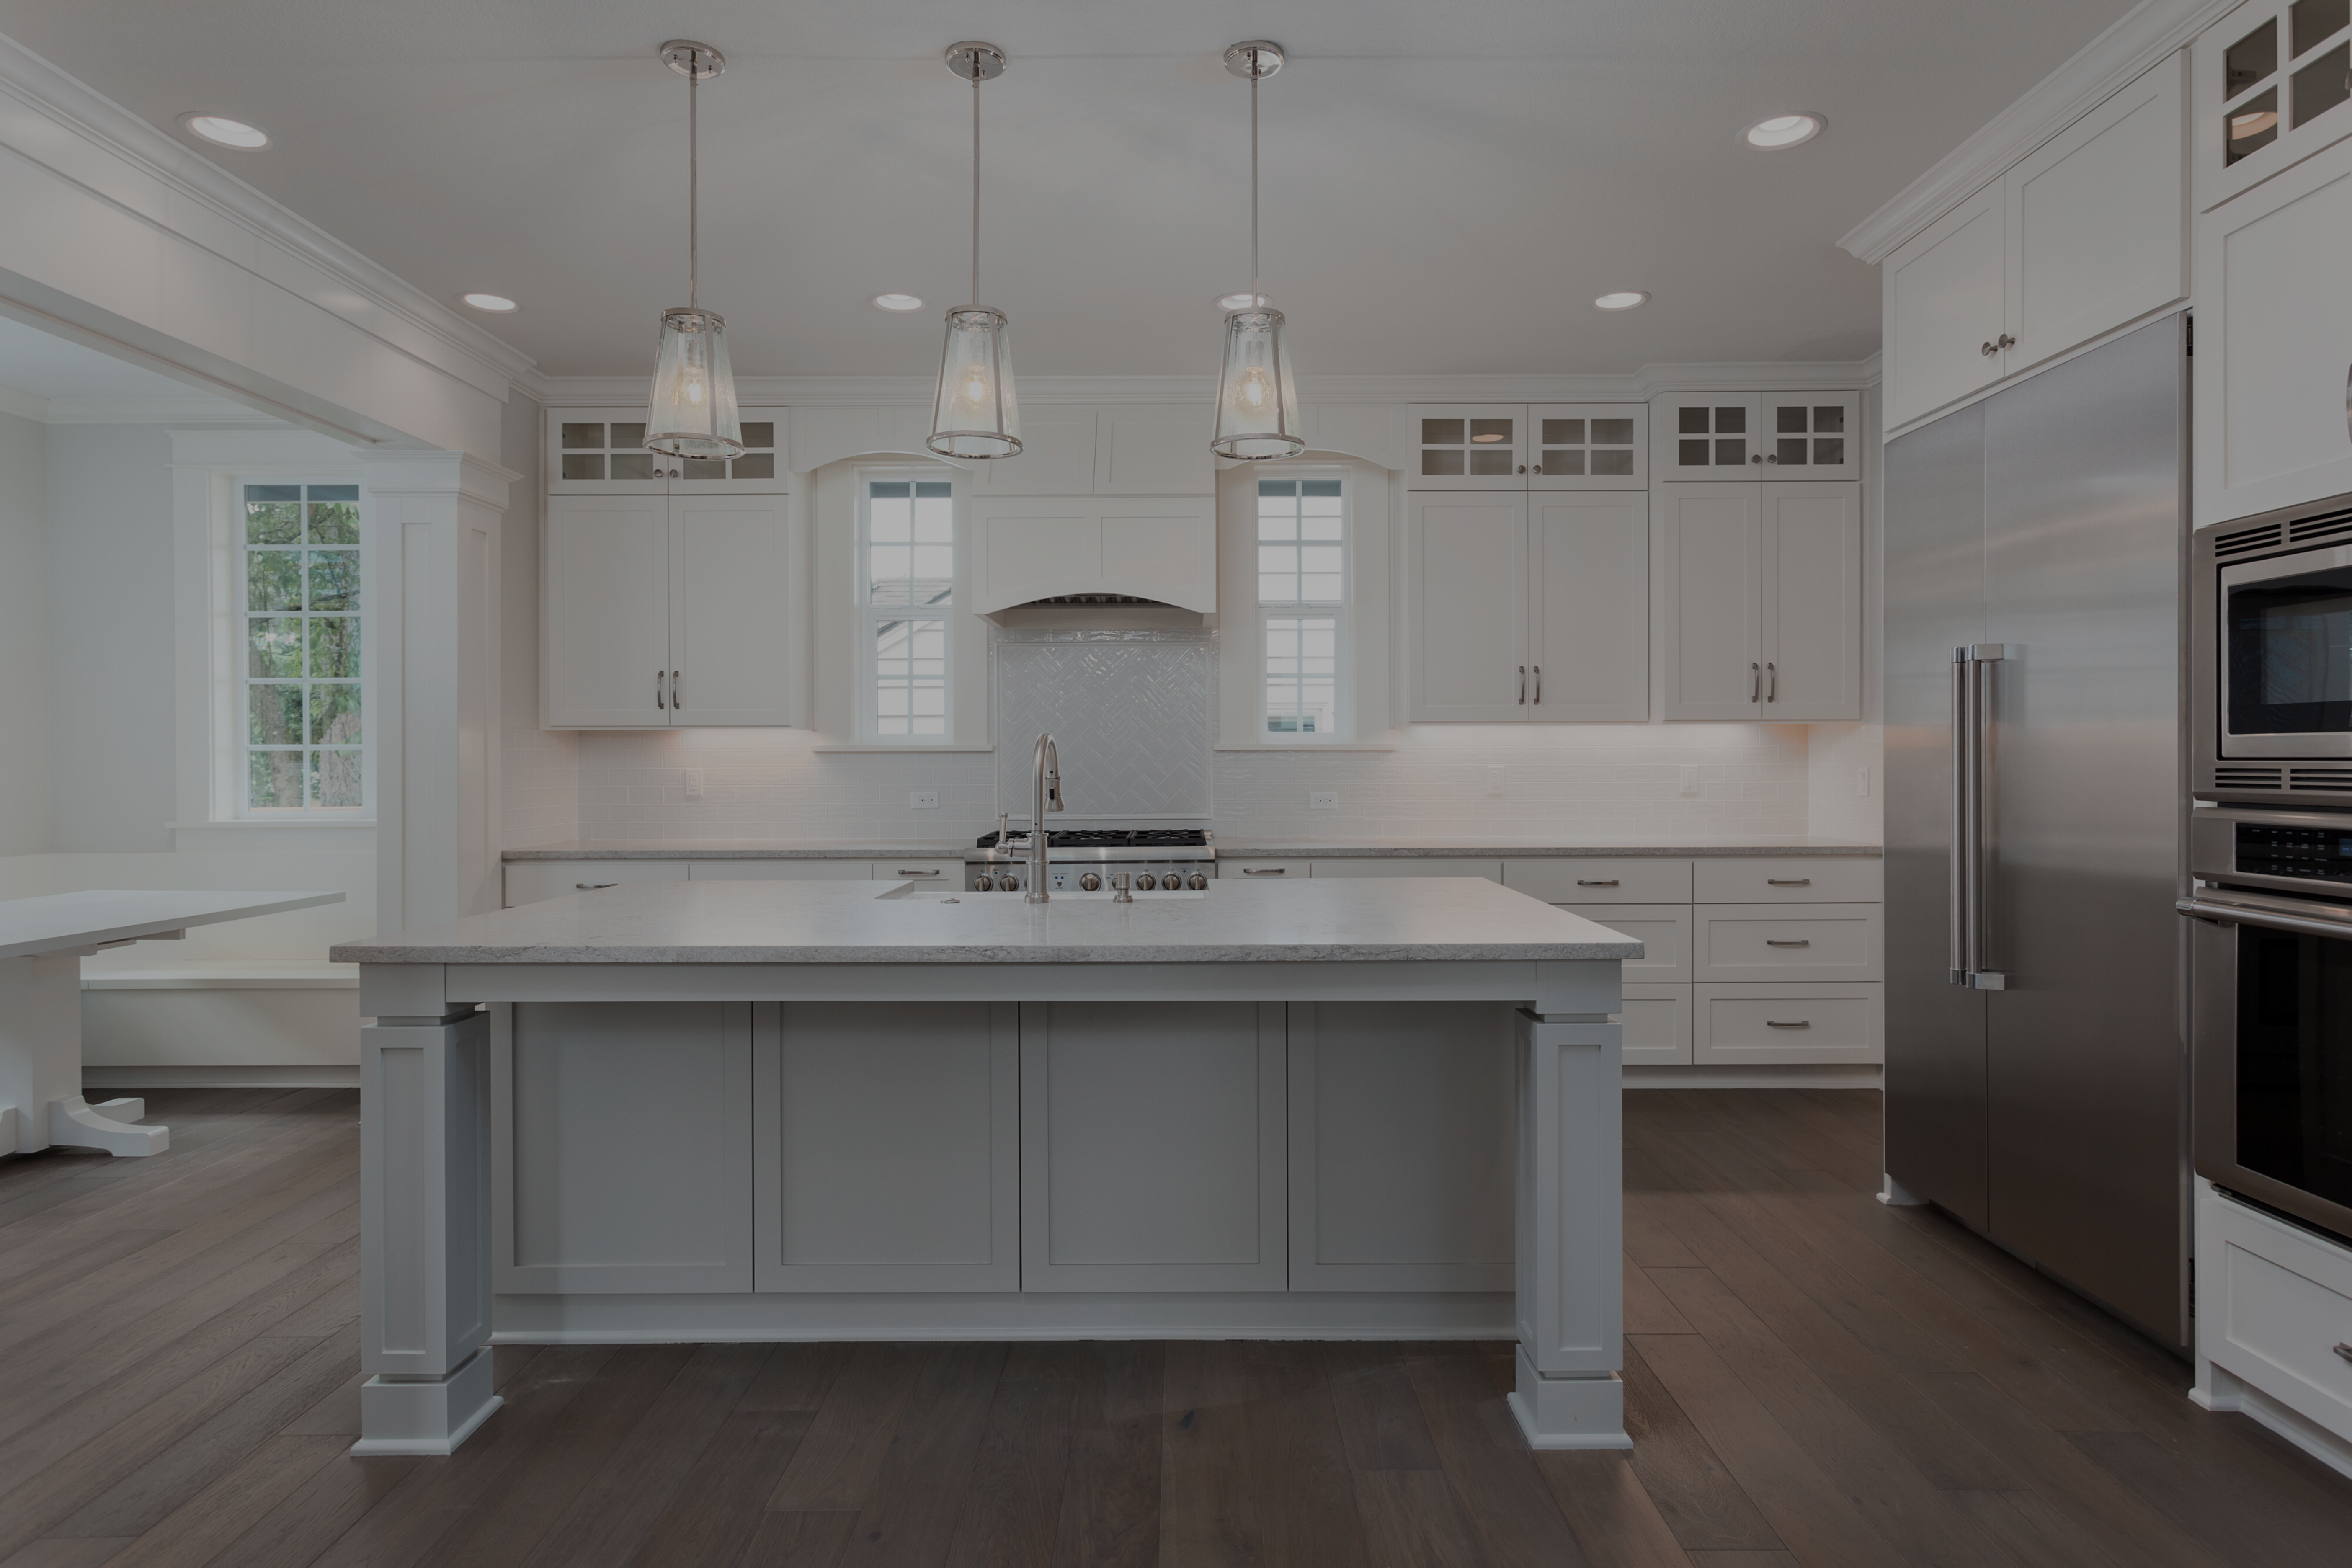 Cabinet Refacing A Quick, Easy Way to Refresh Your Kitchen